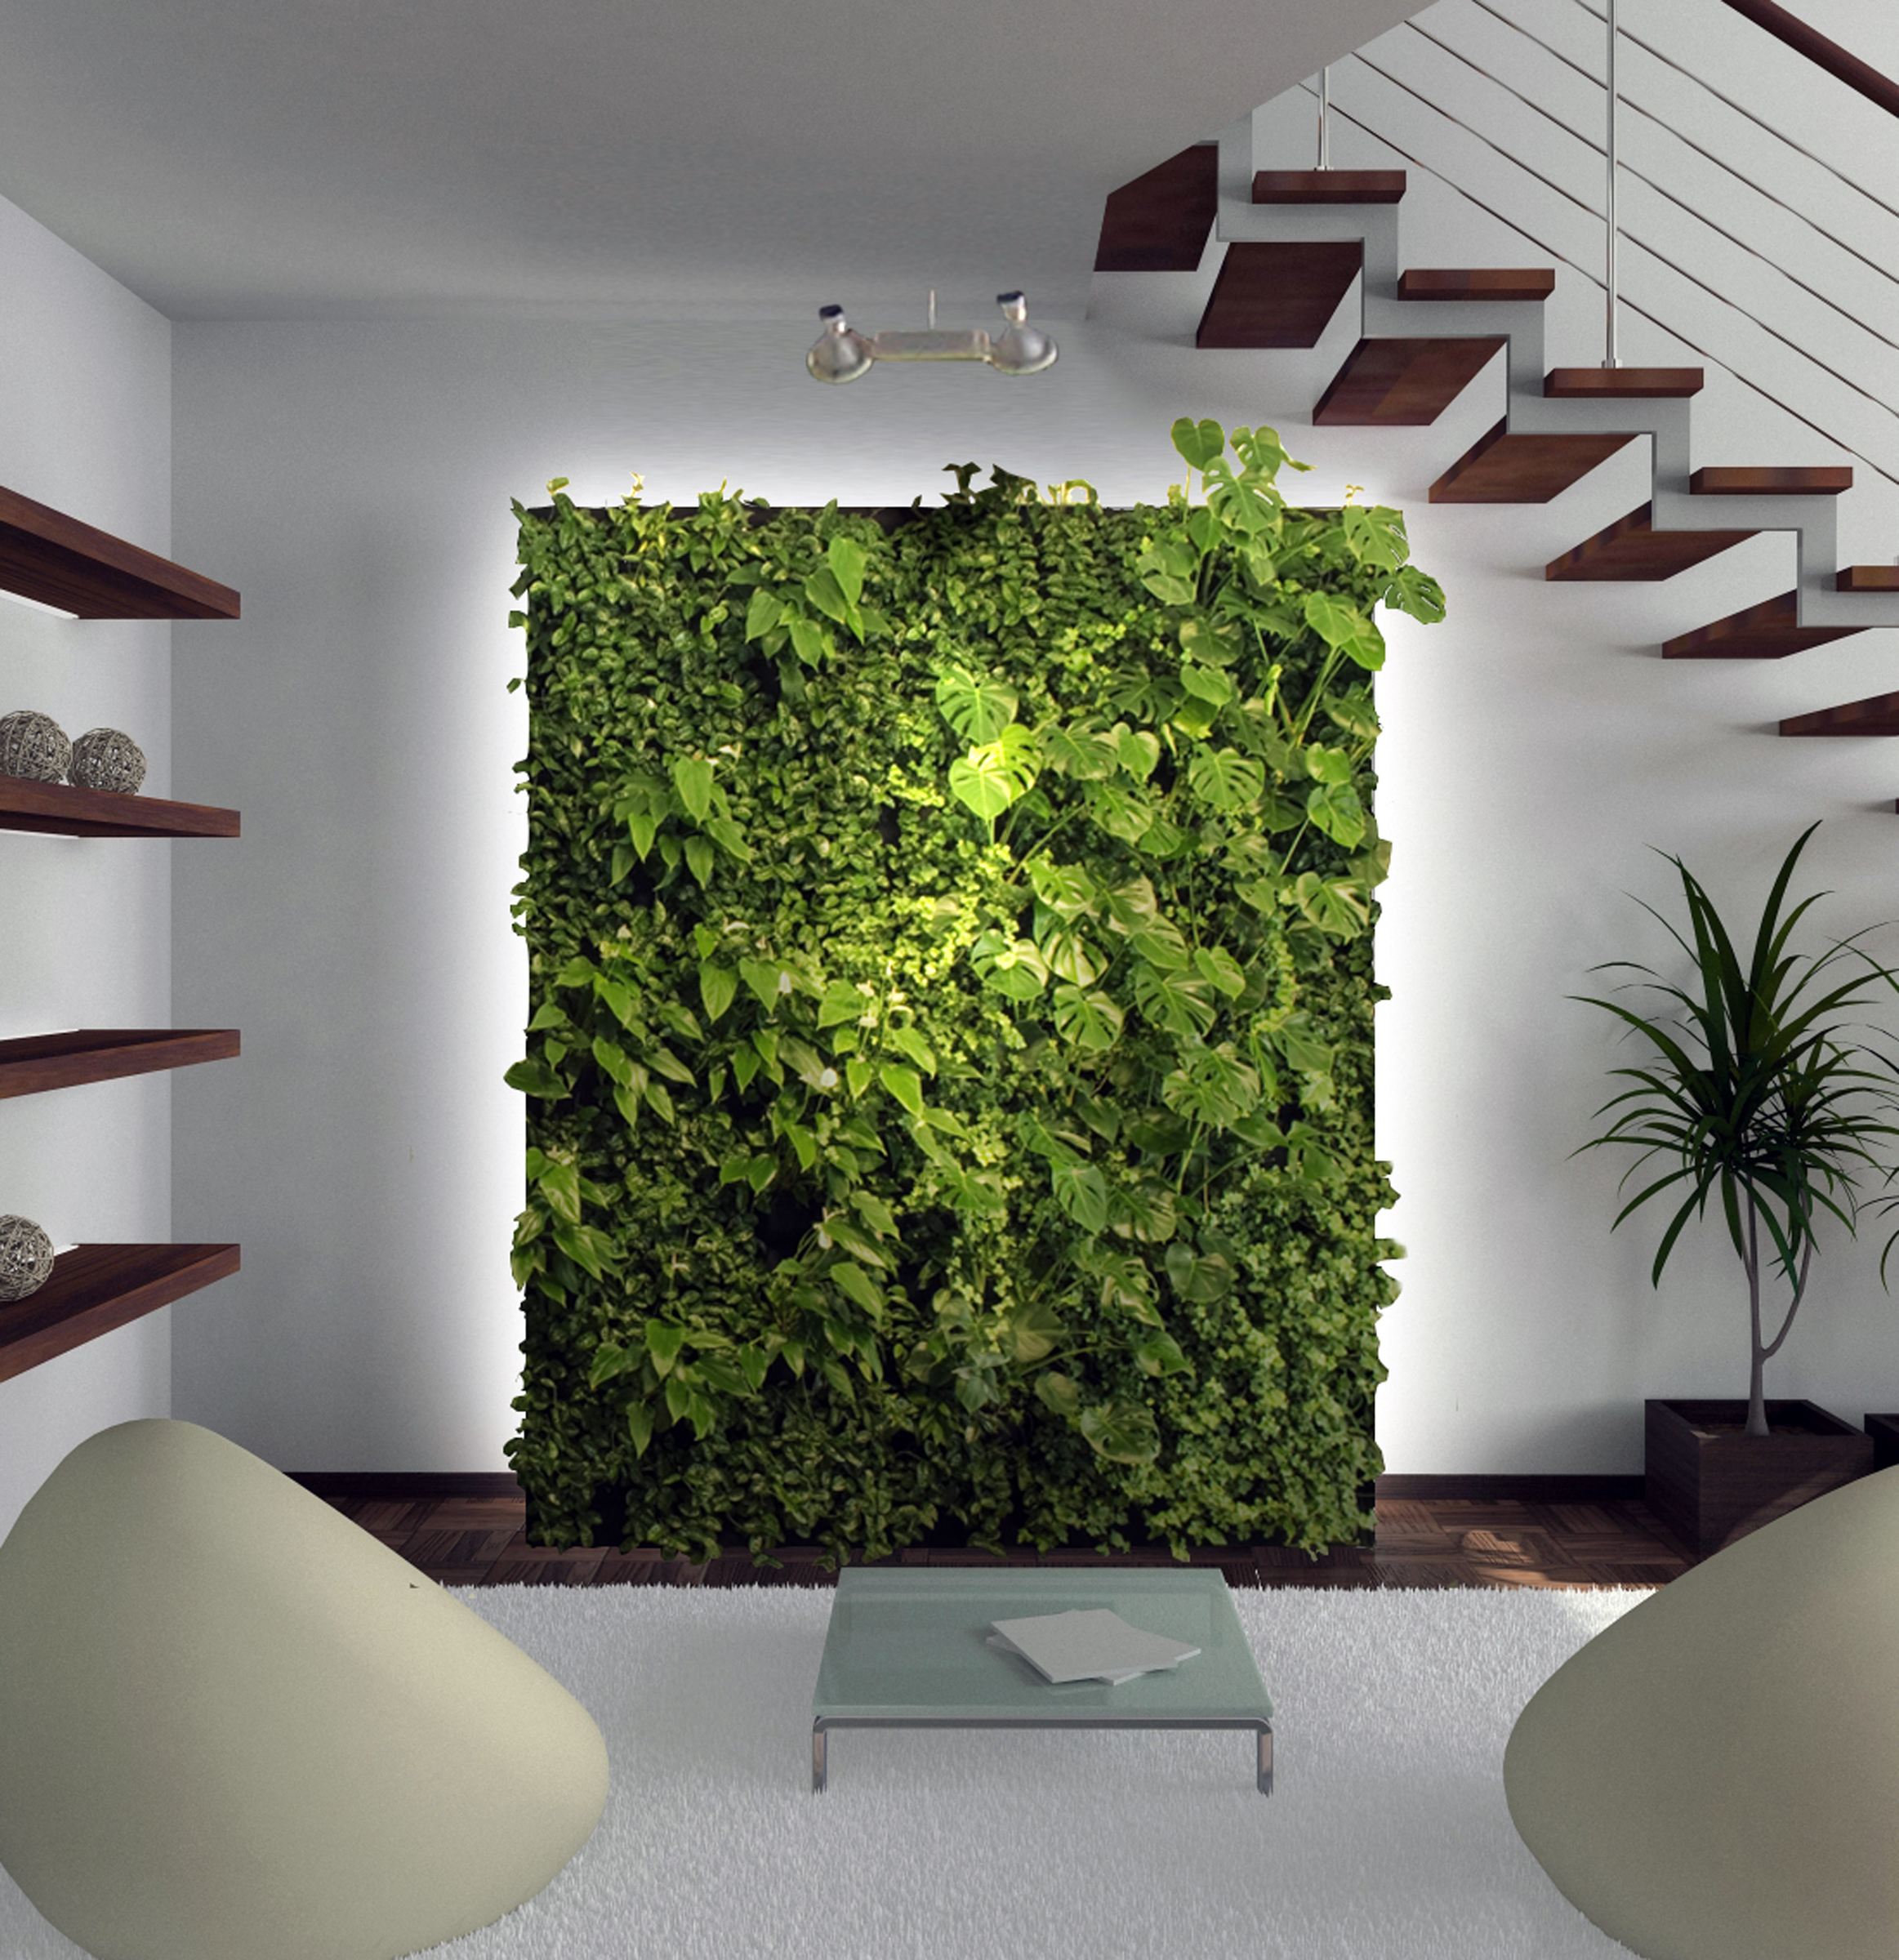 green wall cropped.jpg